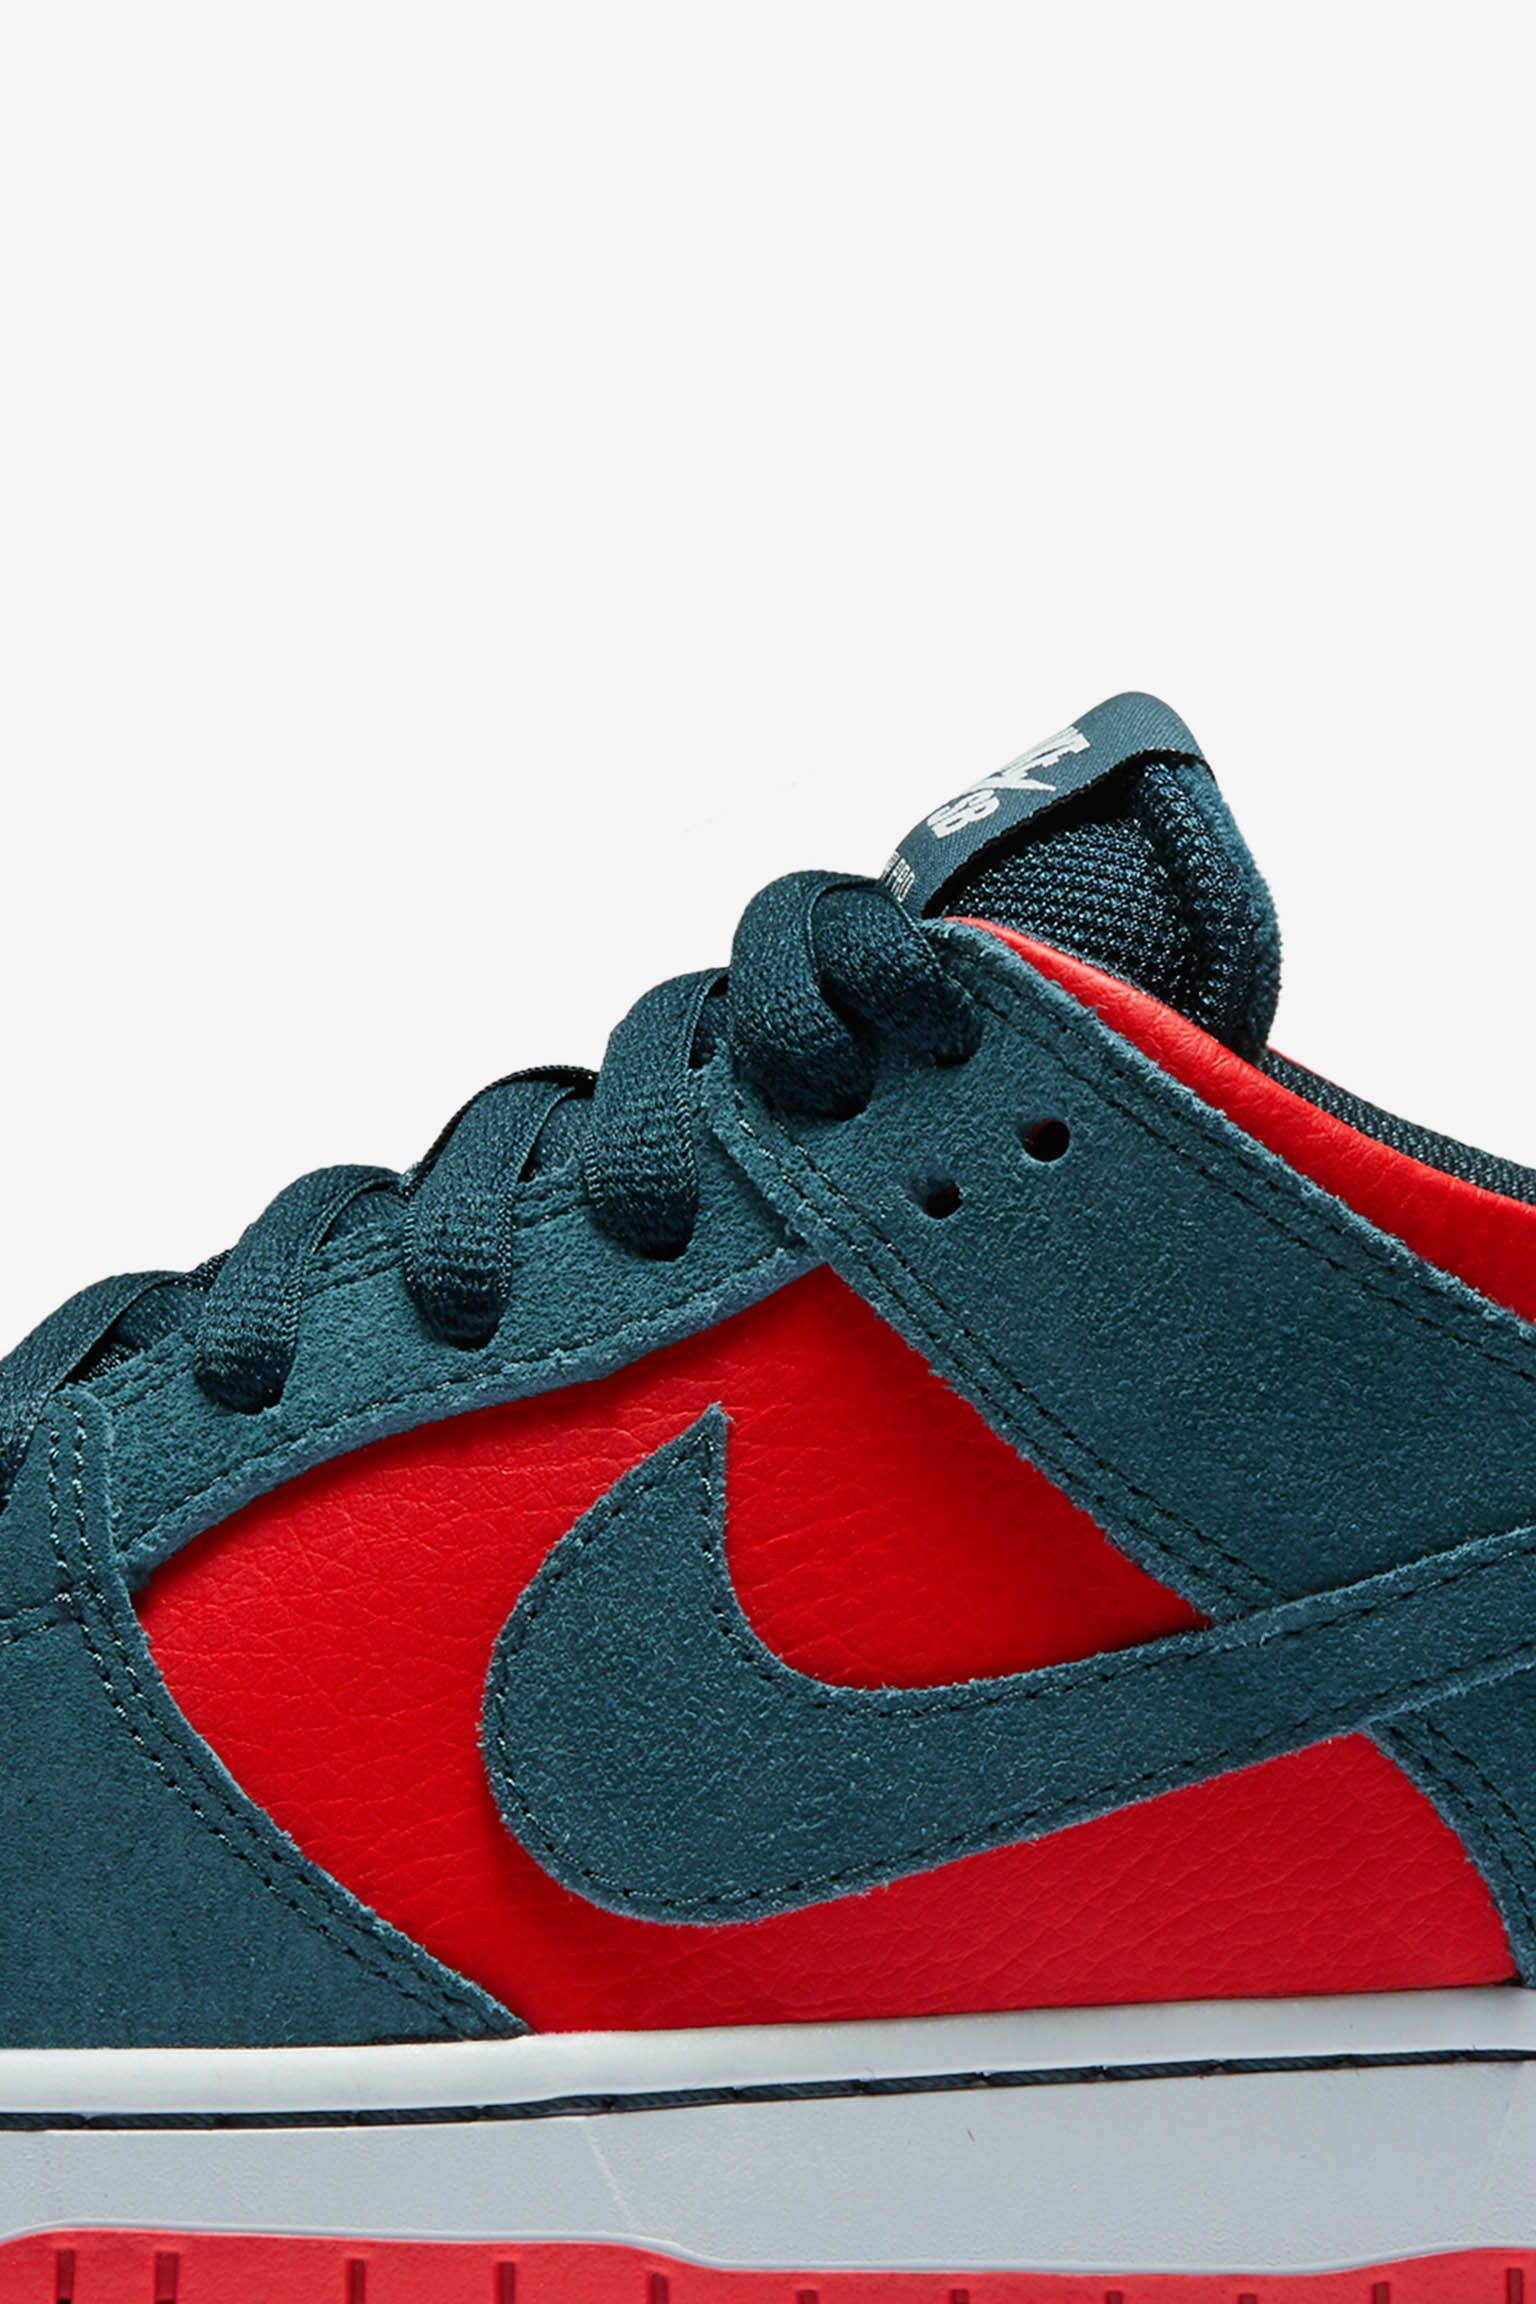 Nike Dunk Low SB Pro 'Nightshade & Chile Red'